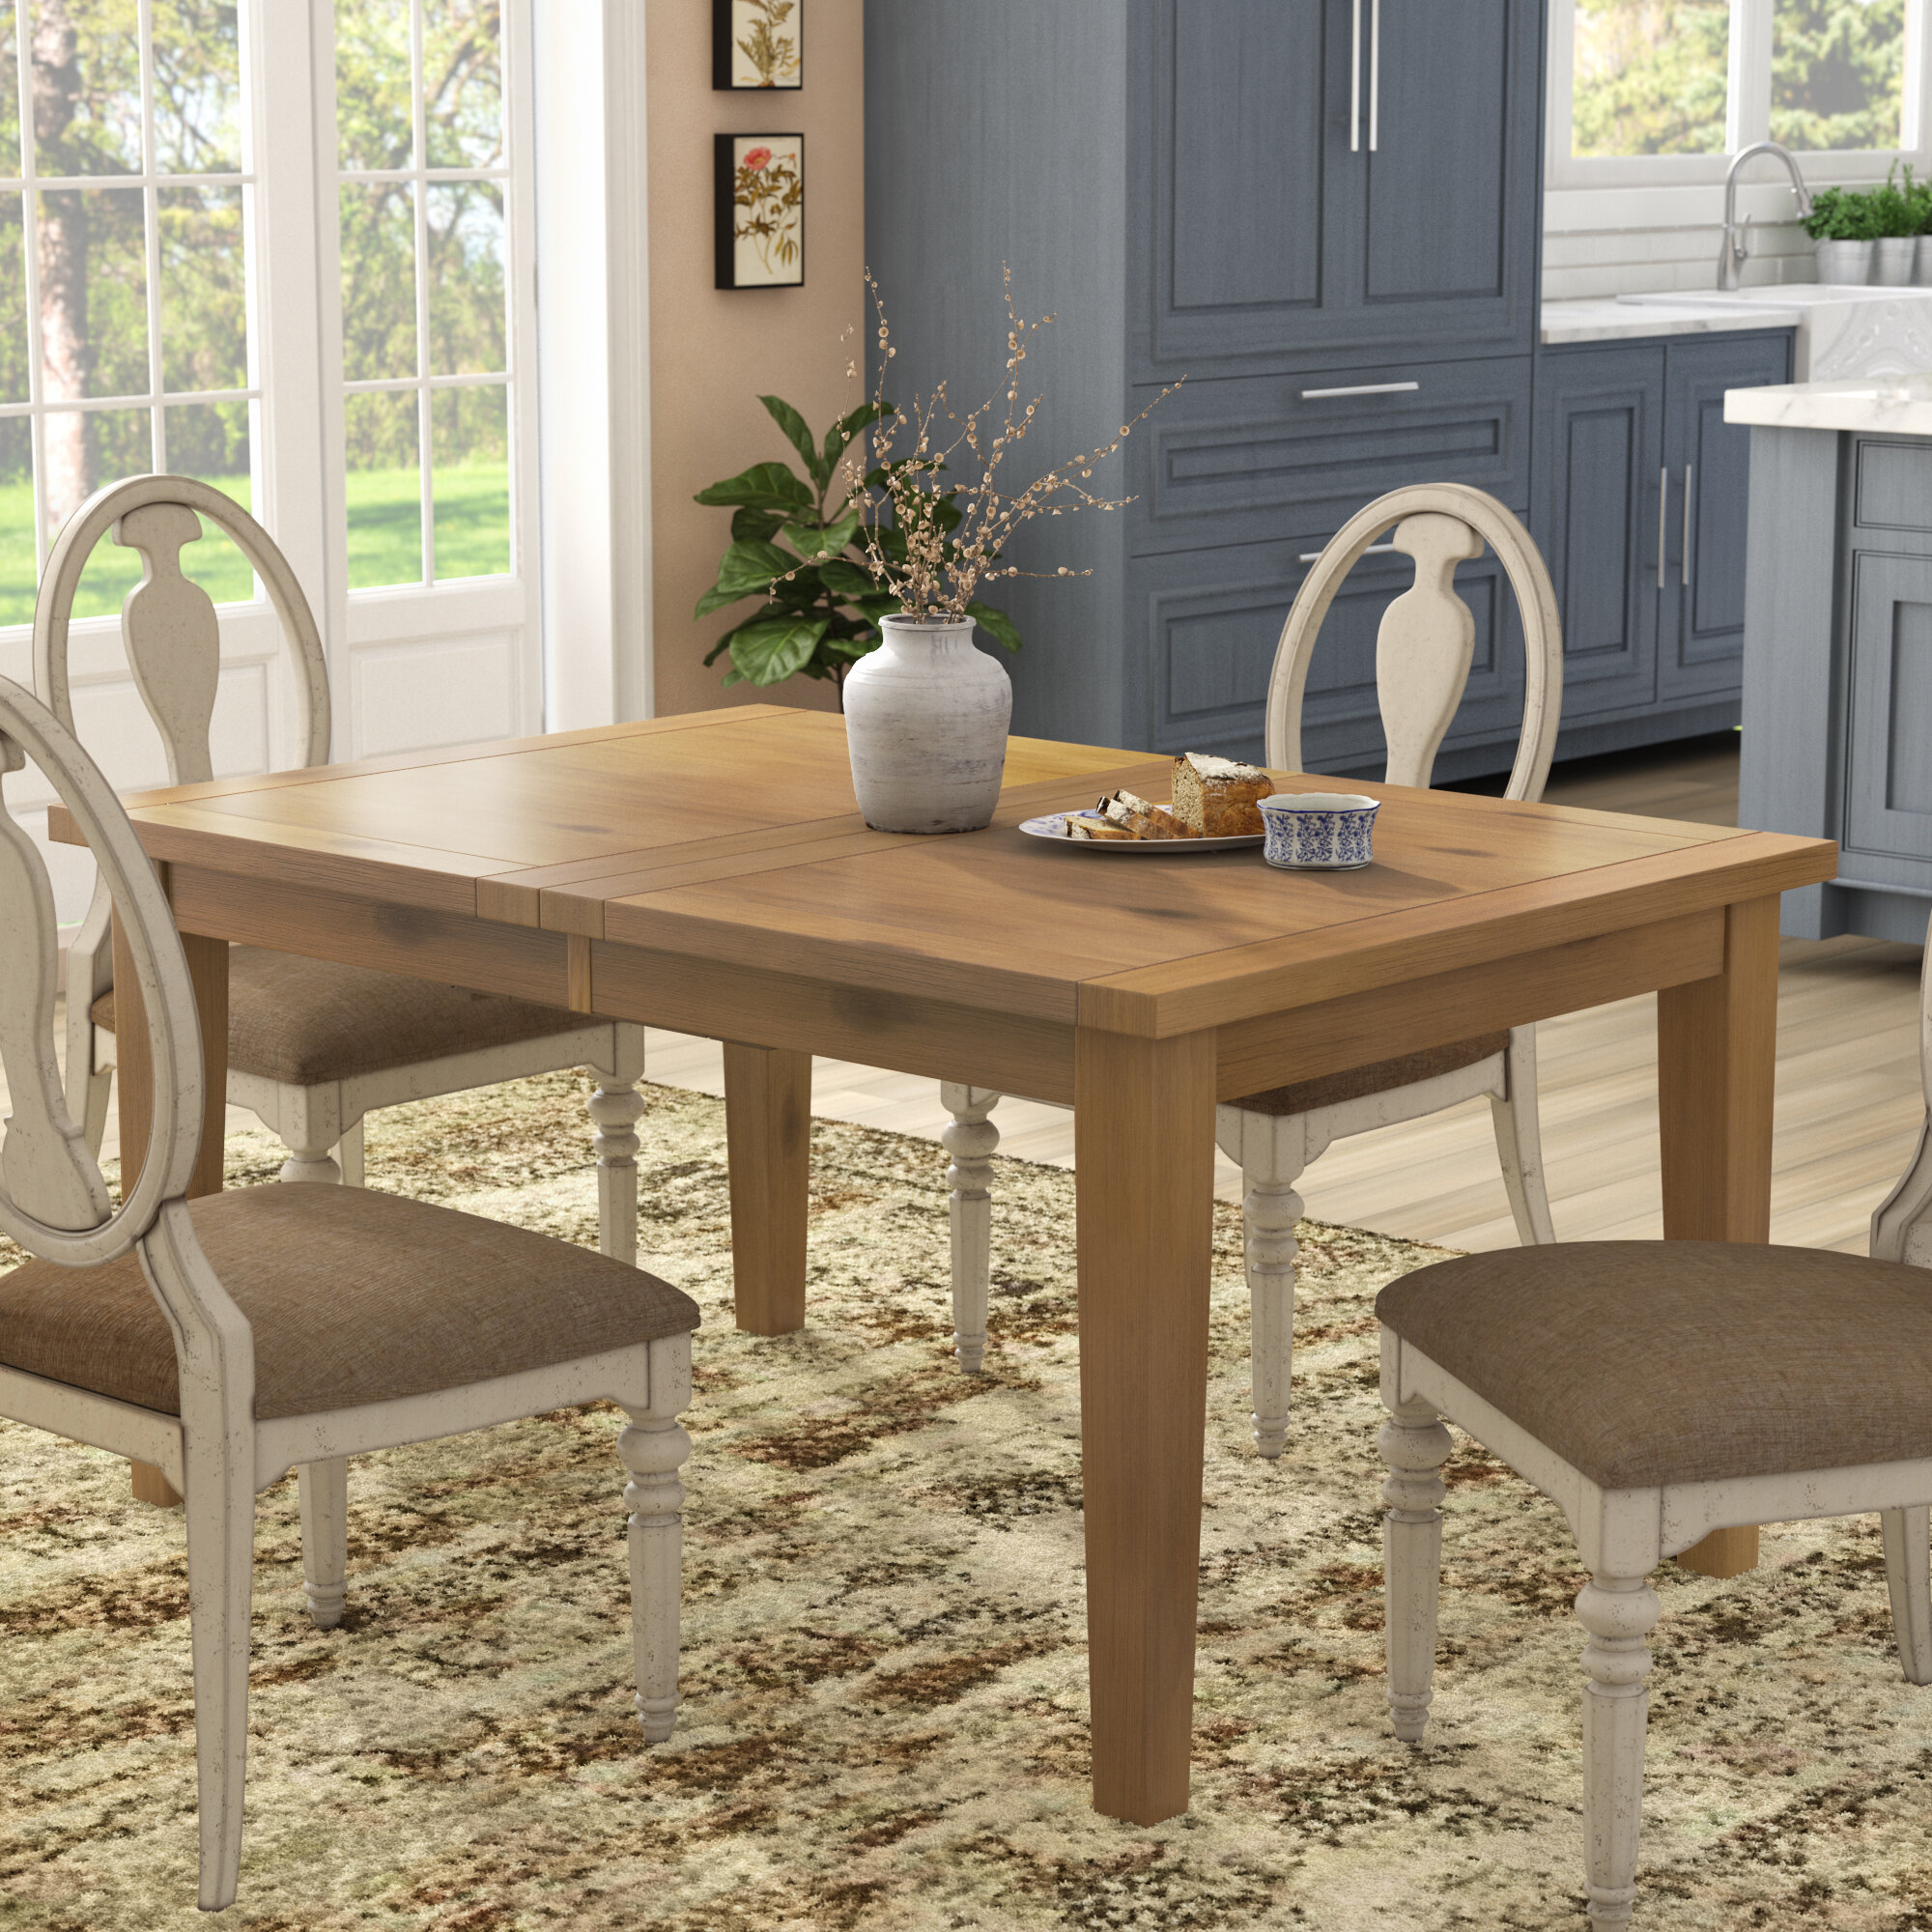 ce36893ea18 Highland Dunes Centralia Extendable Dining Table   Reviews